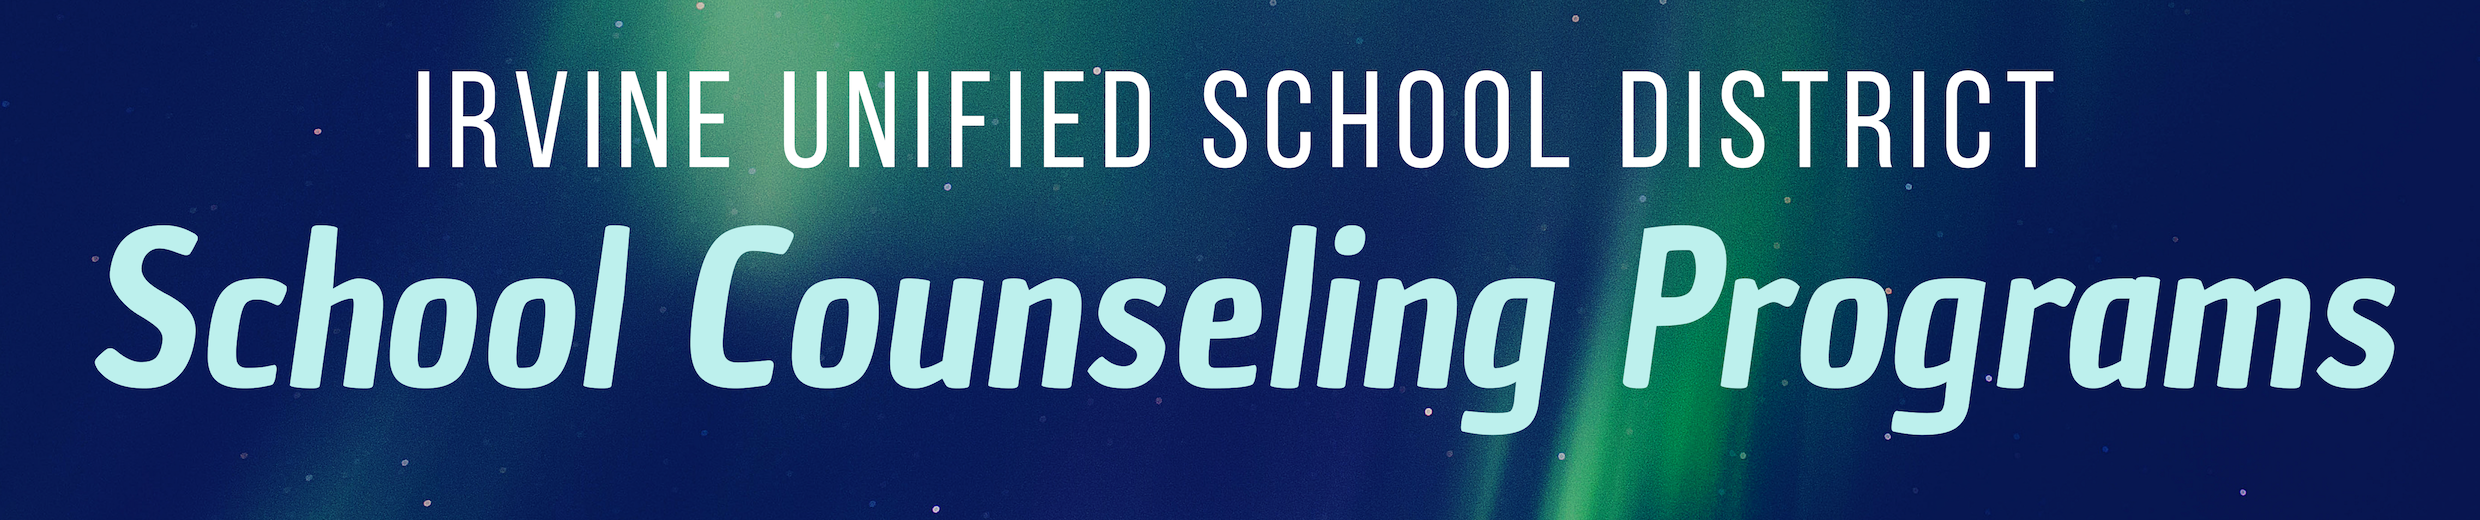 School Counseling Programs